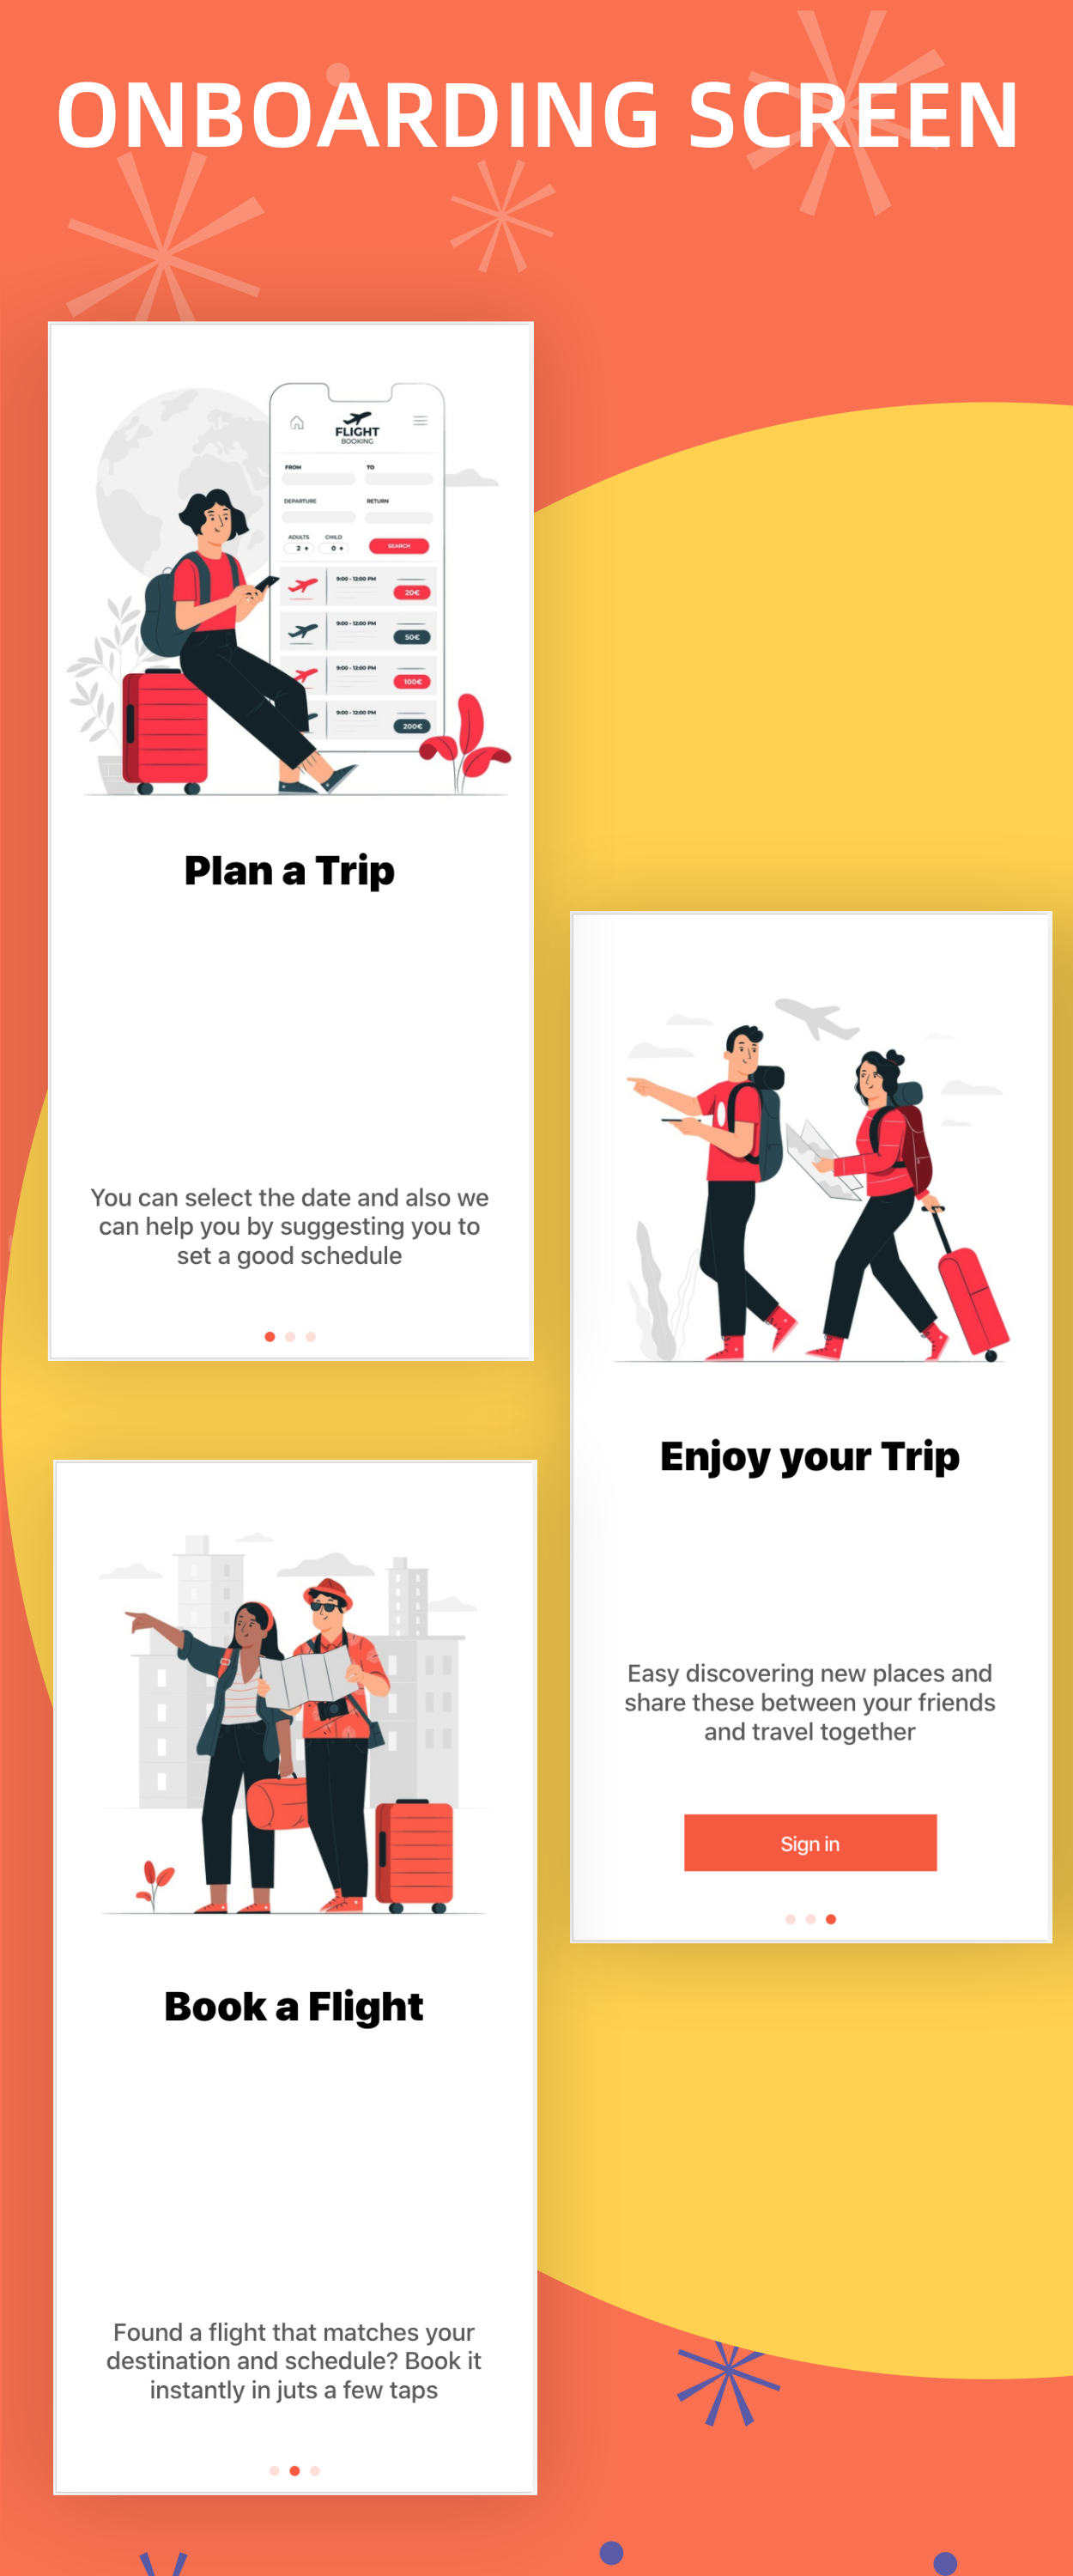 TravelEasy - A Travel Agency Theme UI App By Ionic 5 (Car, Hotel, Flight Booking) - 12